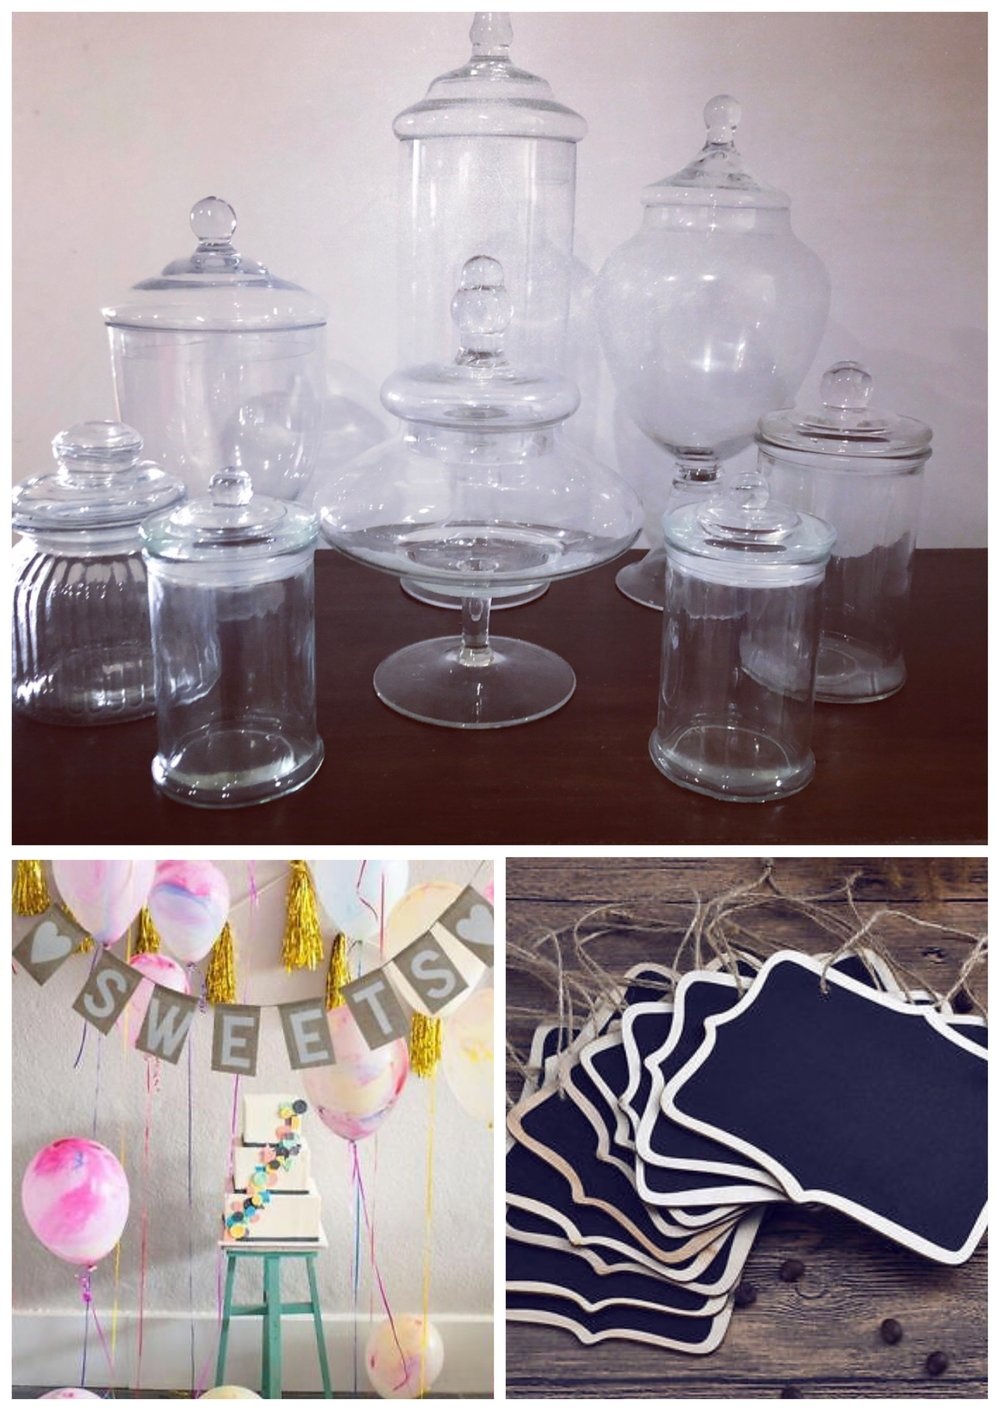 Create a delicious sweets table - Our range of lolly jars, chalkboards and other decorations will help you create a beautiful setting for your wedding or special event